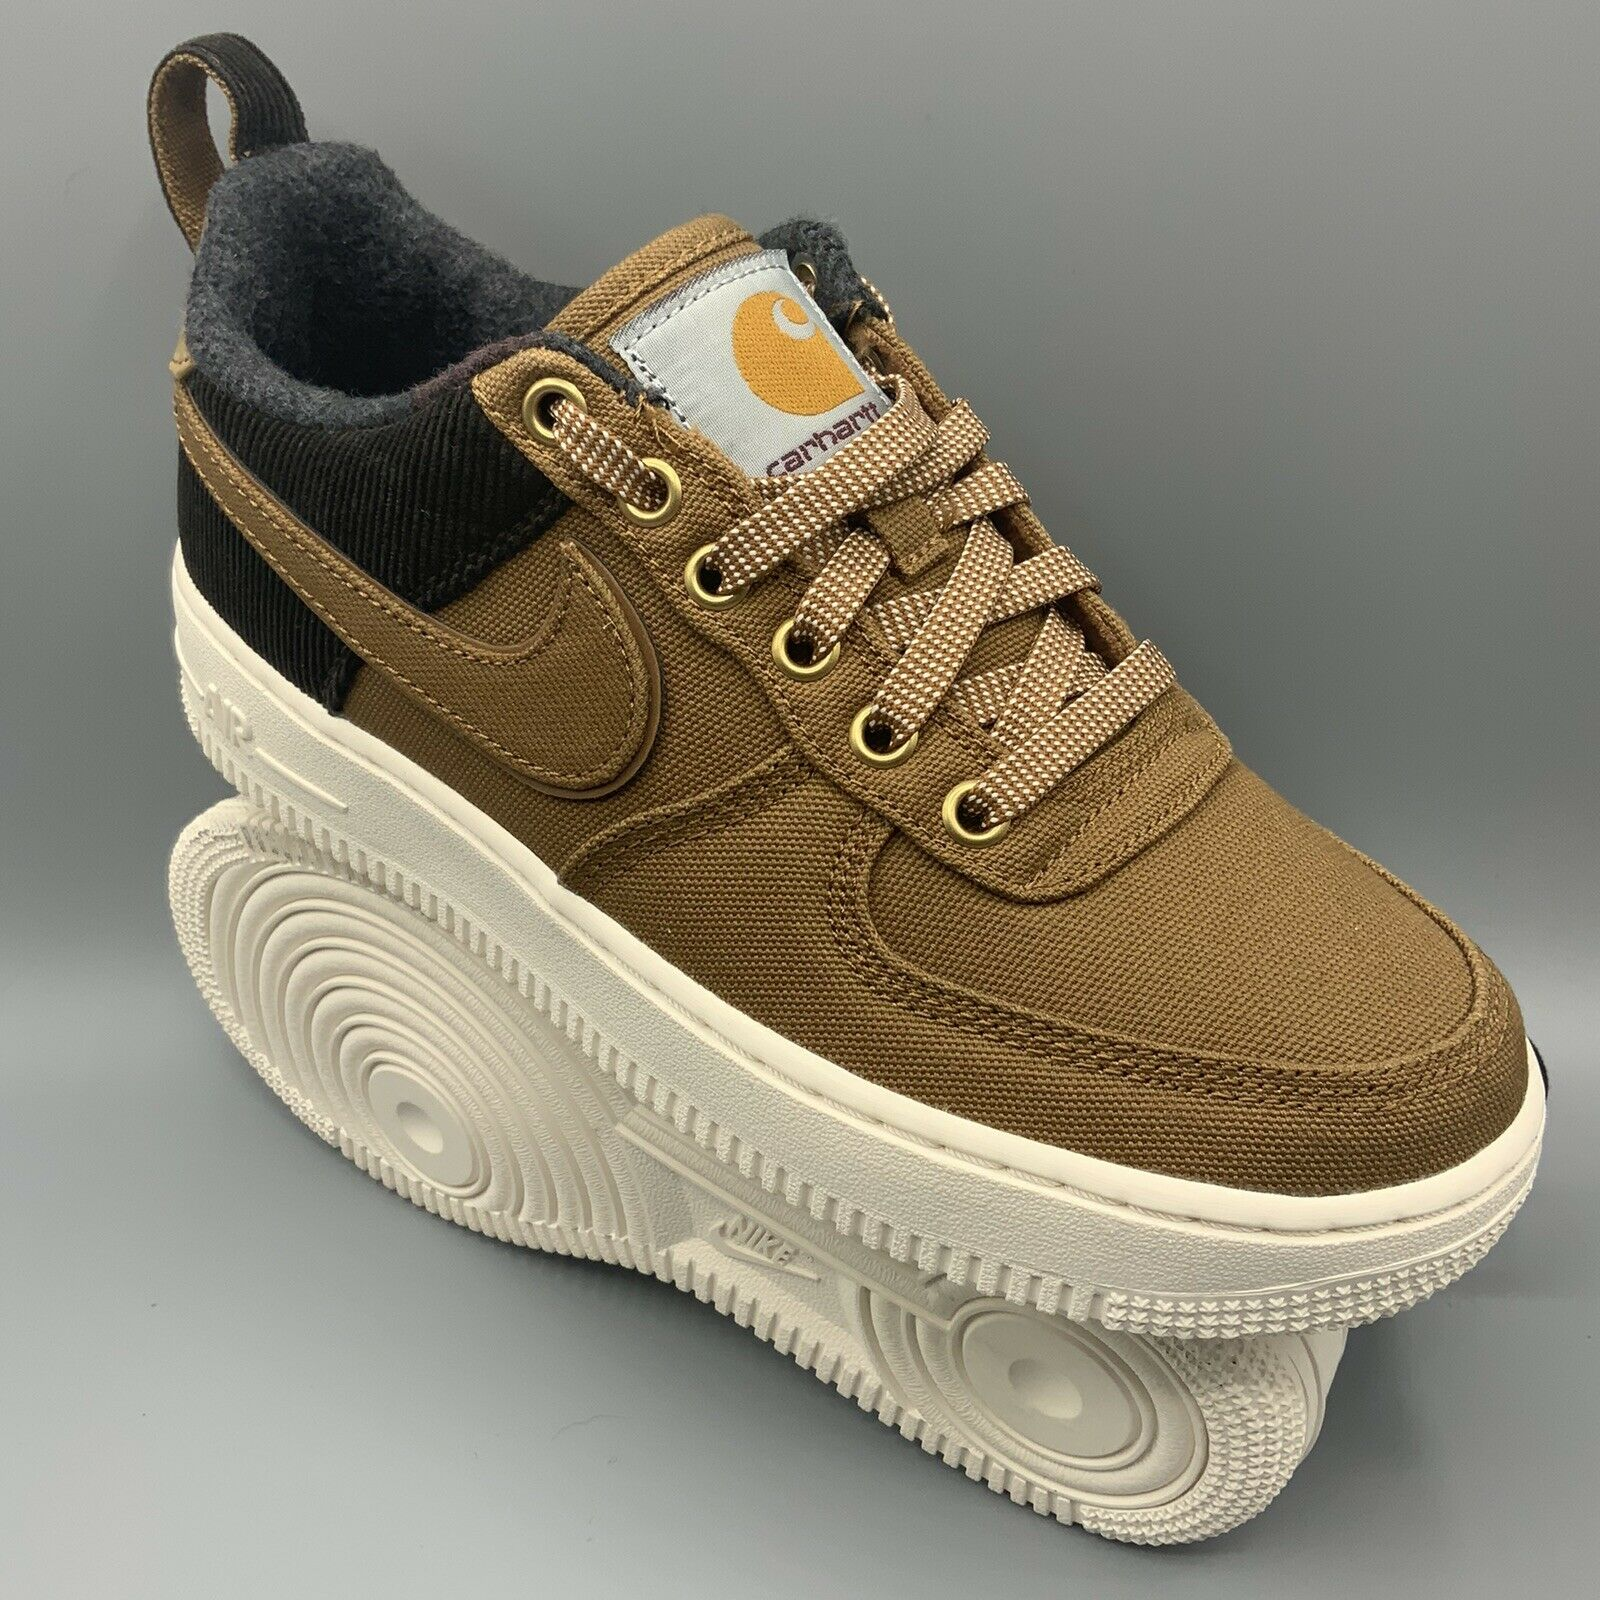 Nike Air Force 1 Low Carhartt WIP Ale Brown